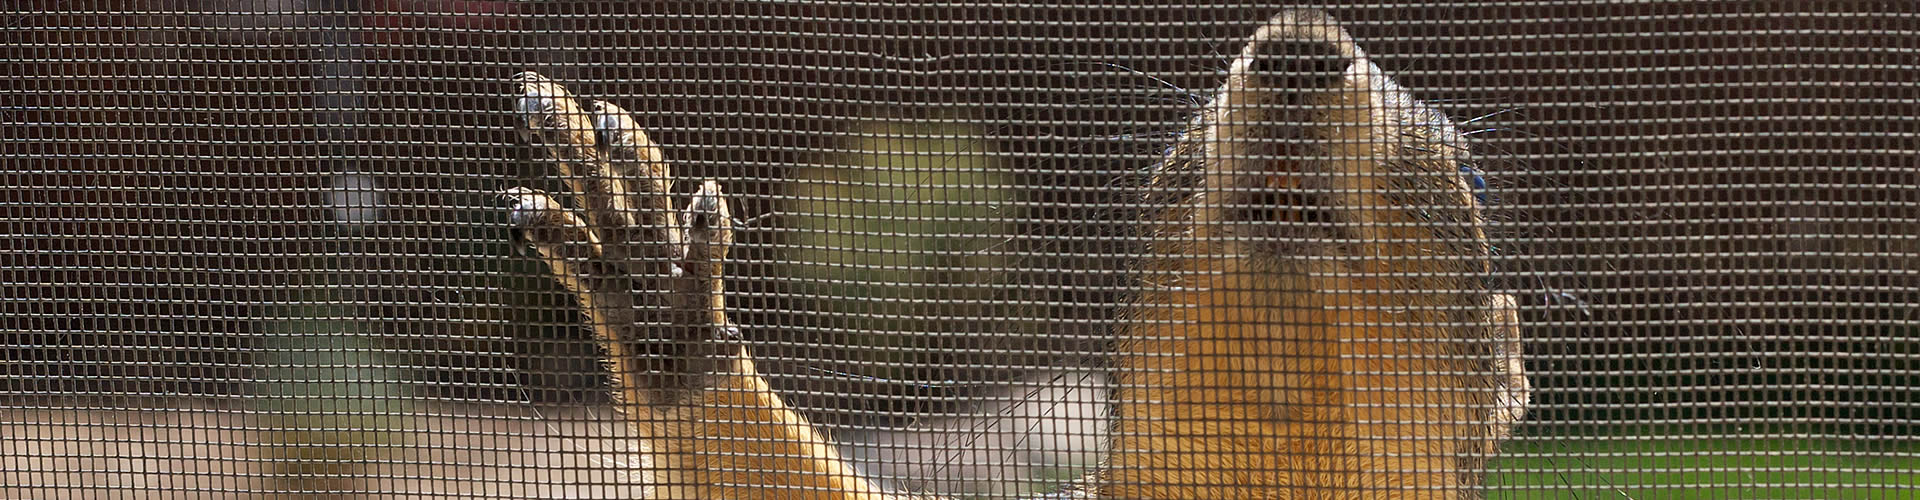 A squirrel is scratching a pet-proof screen, while the window screen is intact.